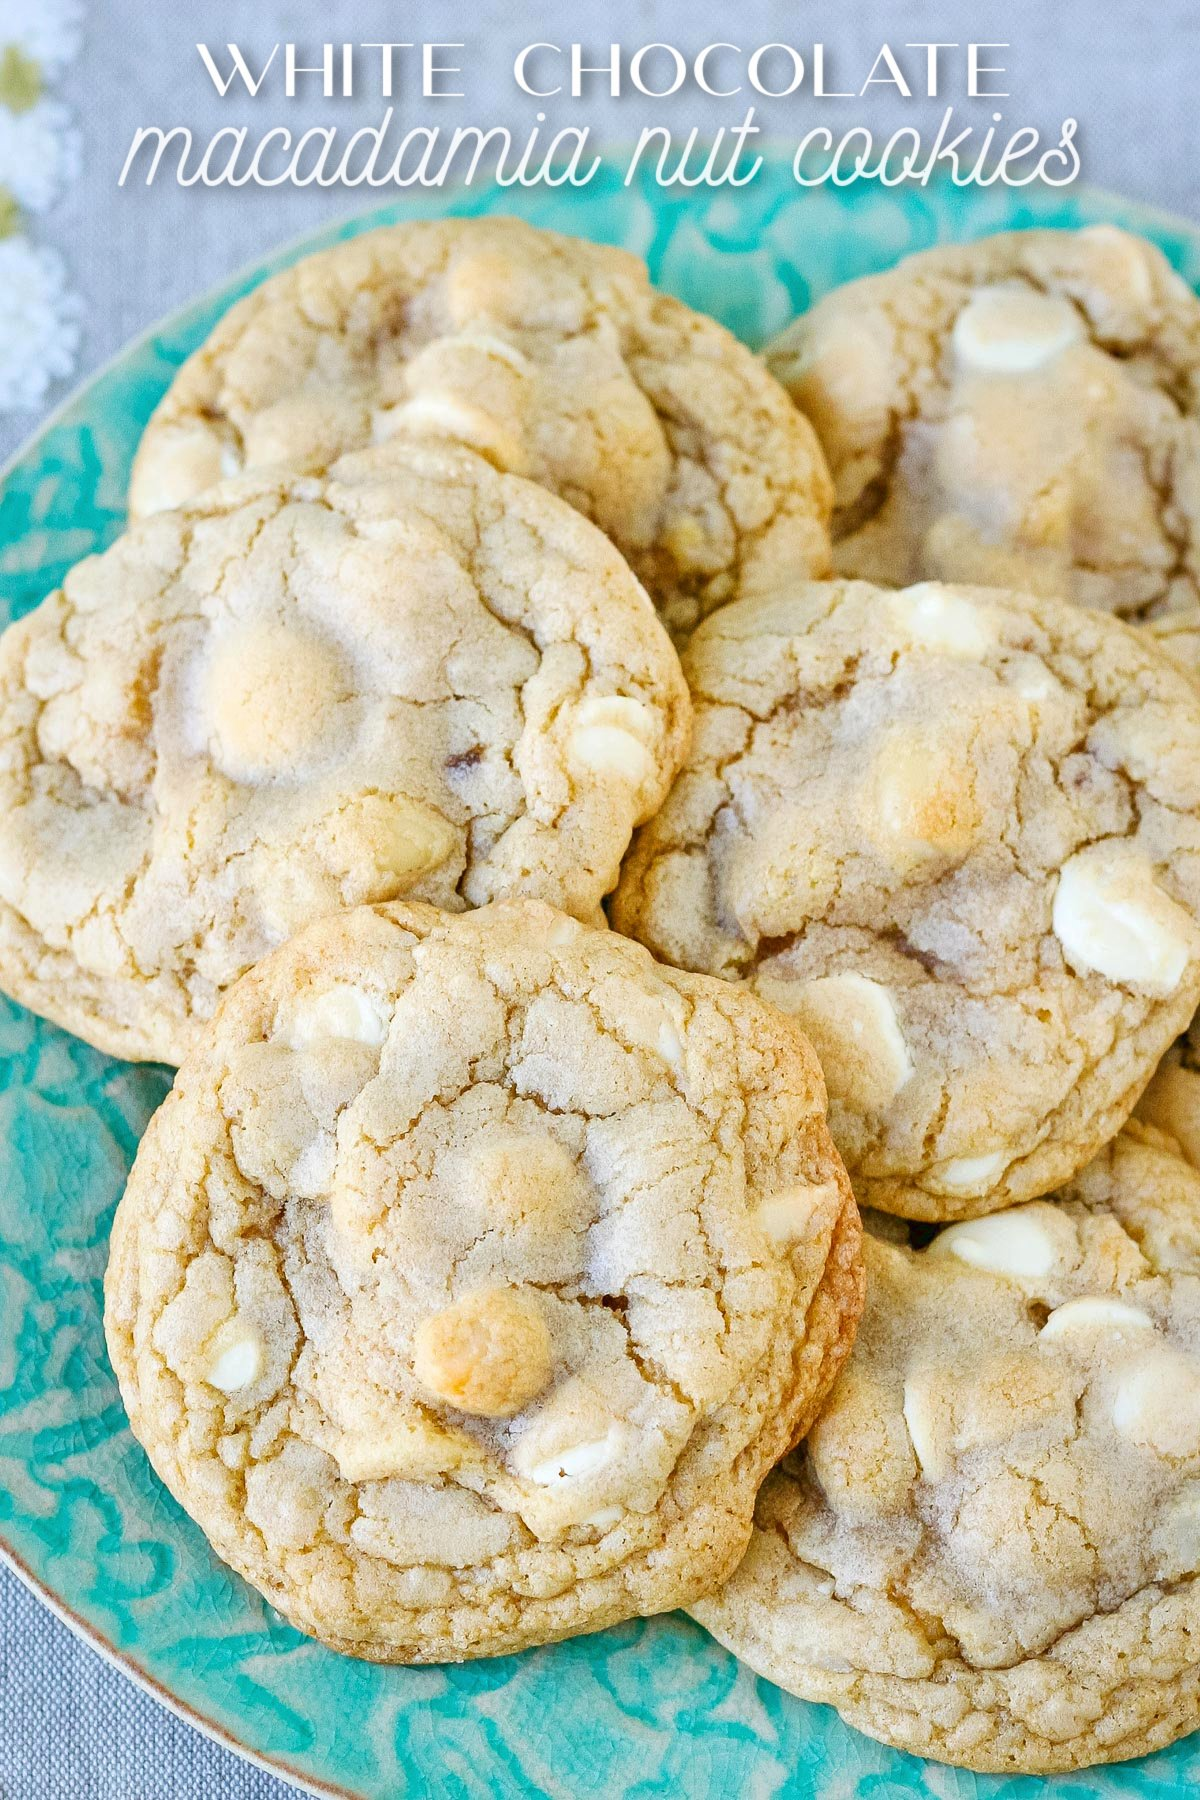 green plate piled with white chocolate macadamia nut cookies and title overlay at top of image